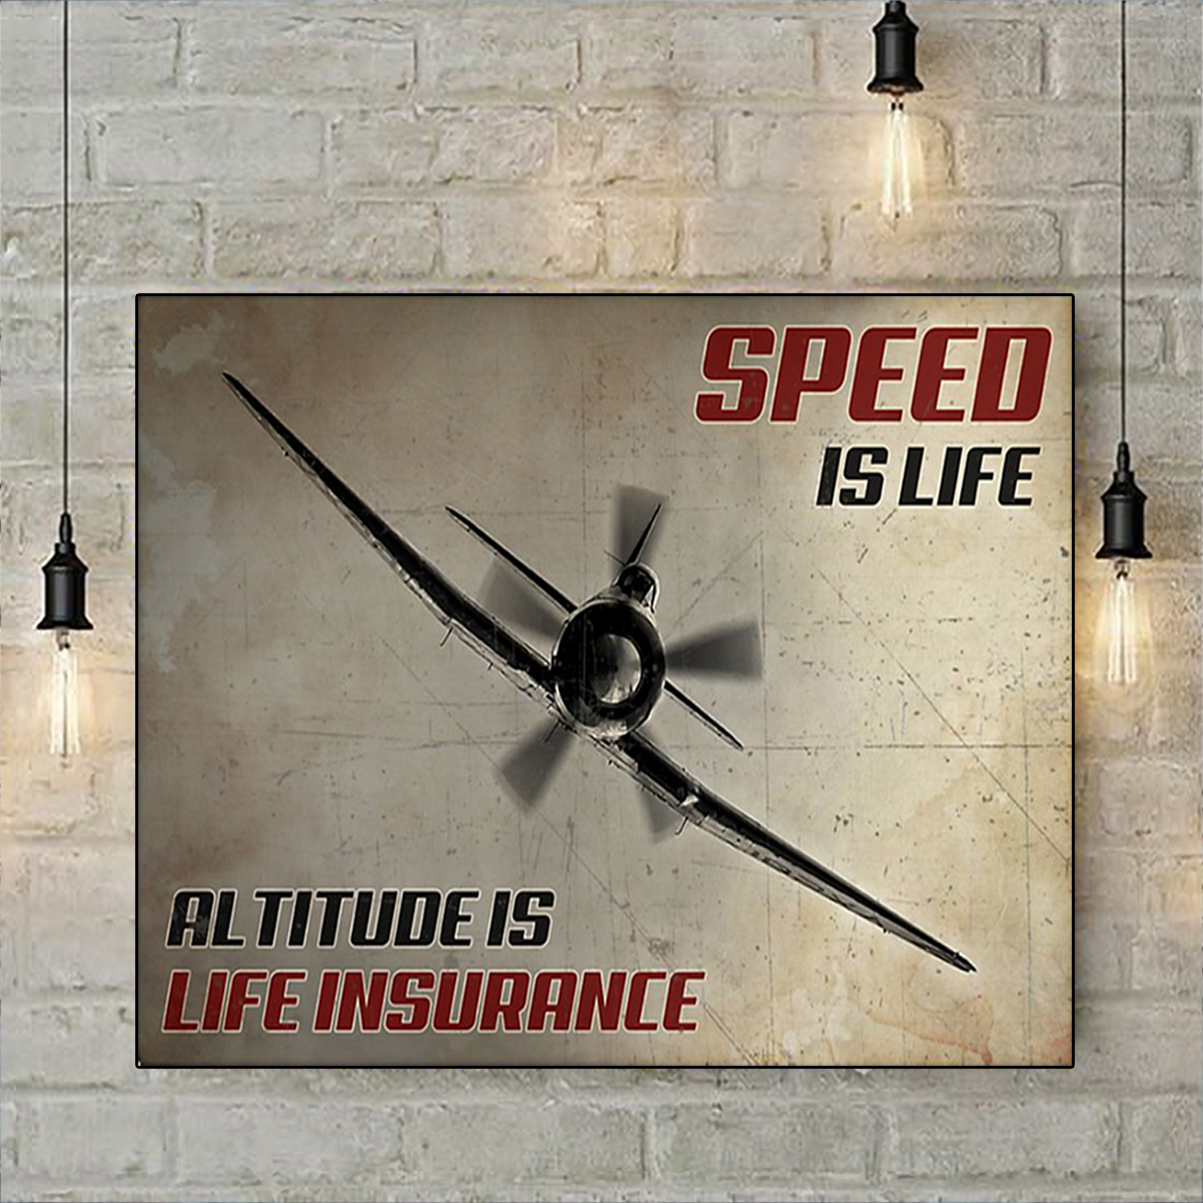 Pilot speed is life altitude is life insurance poster A3